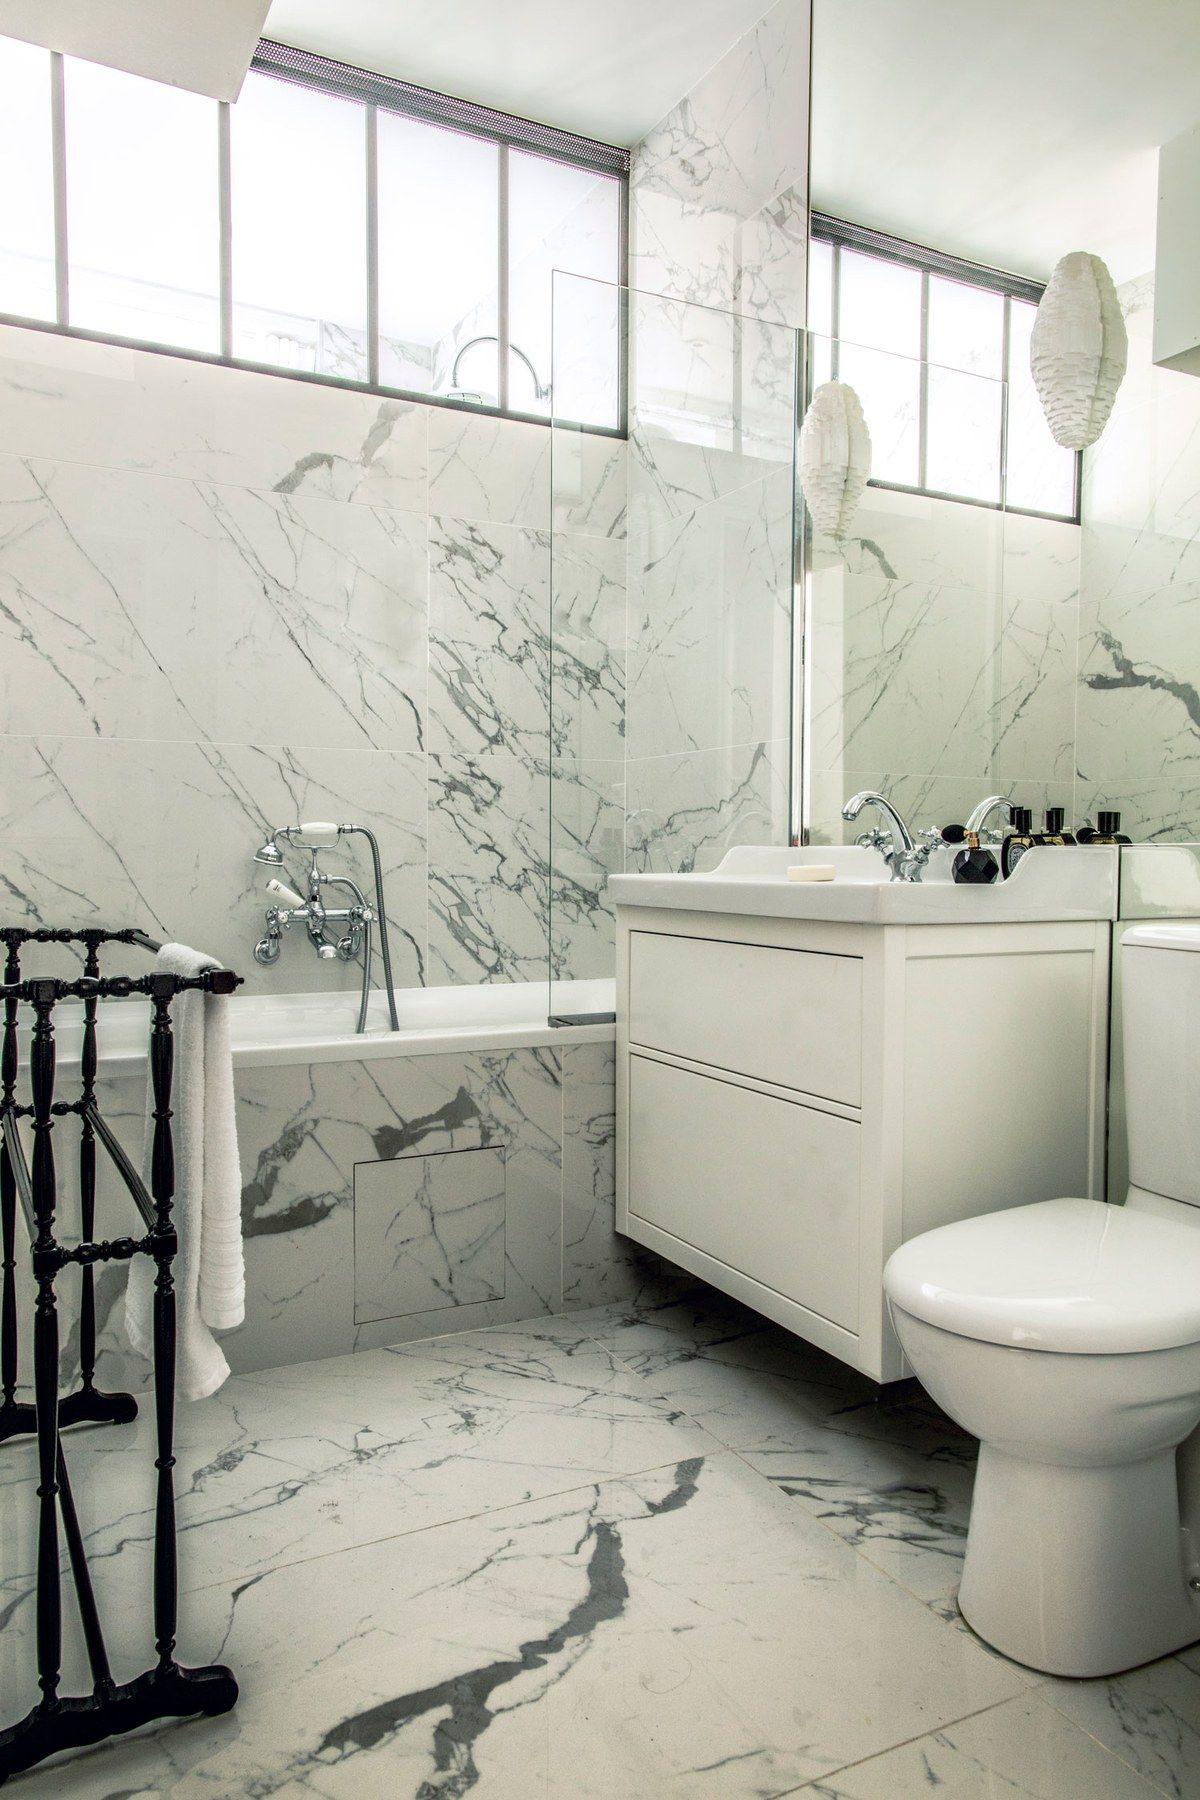 Huynh Completely Redesigned The Bath Lining It In White Carrara